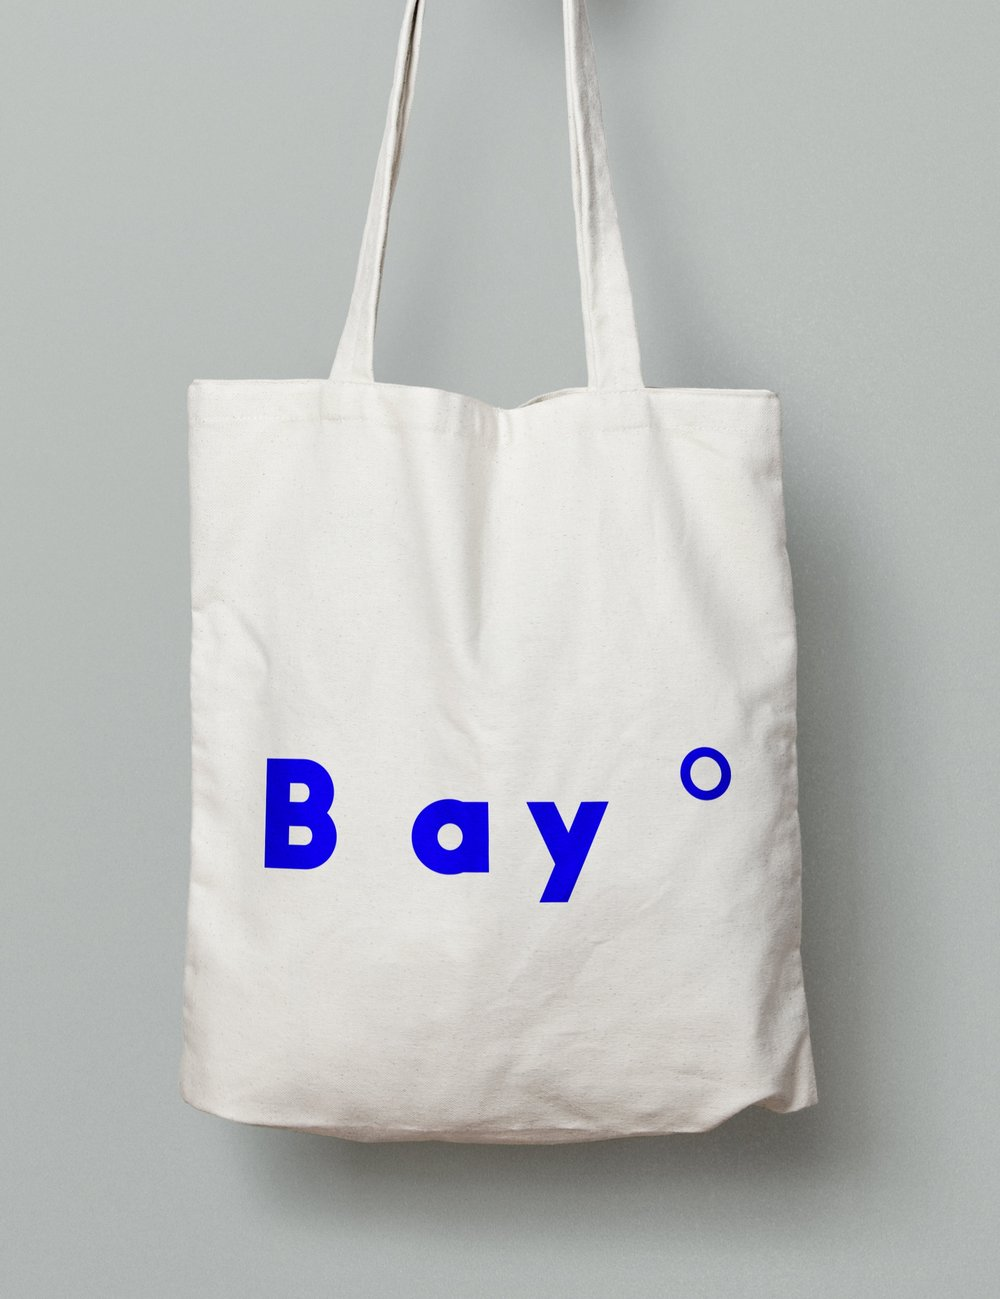 Bay gallery / brand design